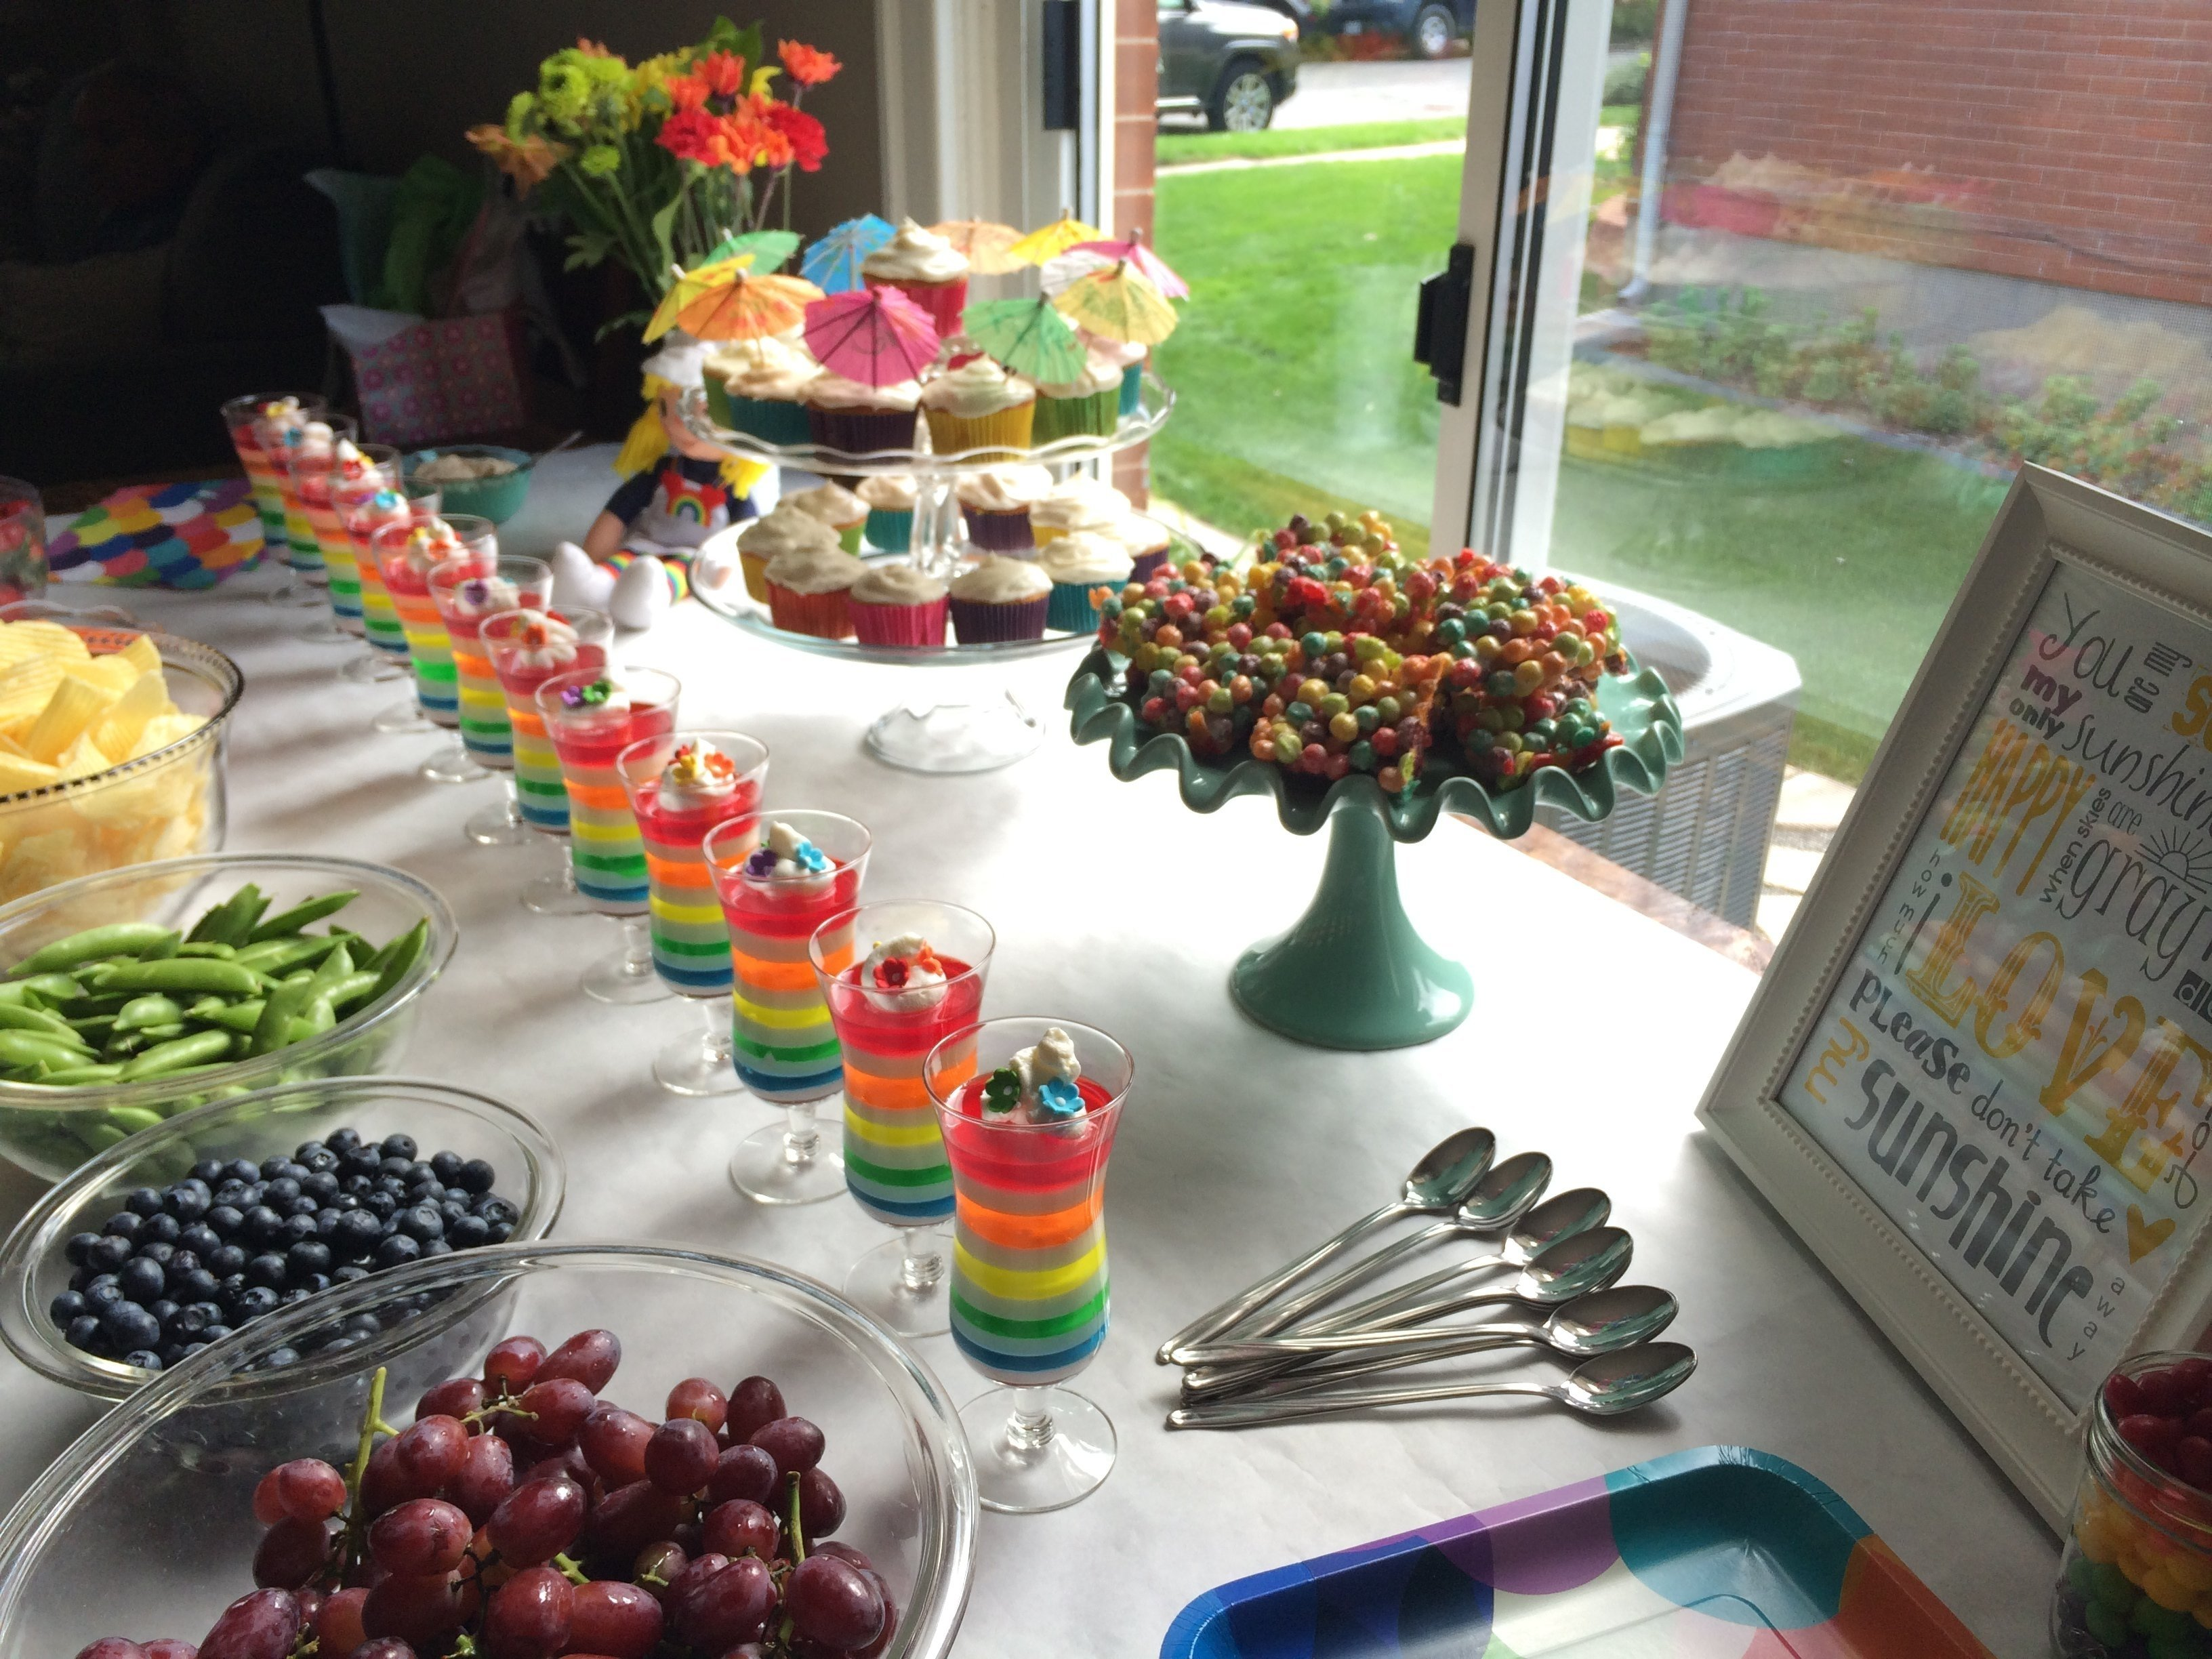 10 Trendy 4 Year Old Birthday Ideas easy birthday party ideas for 7 year old boy at home attractive 10 2020